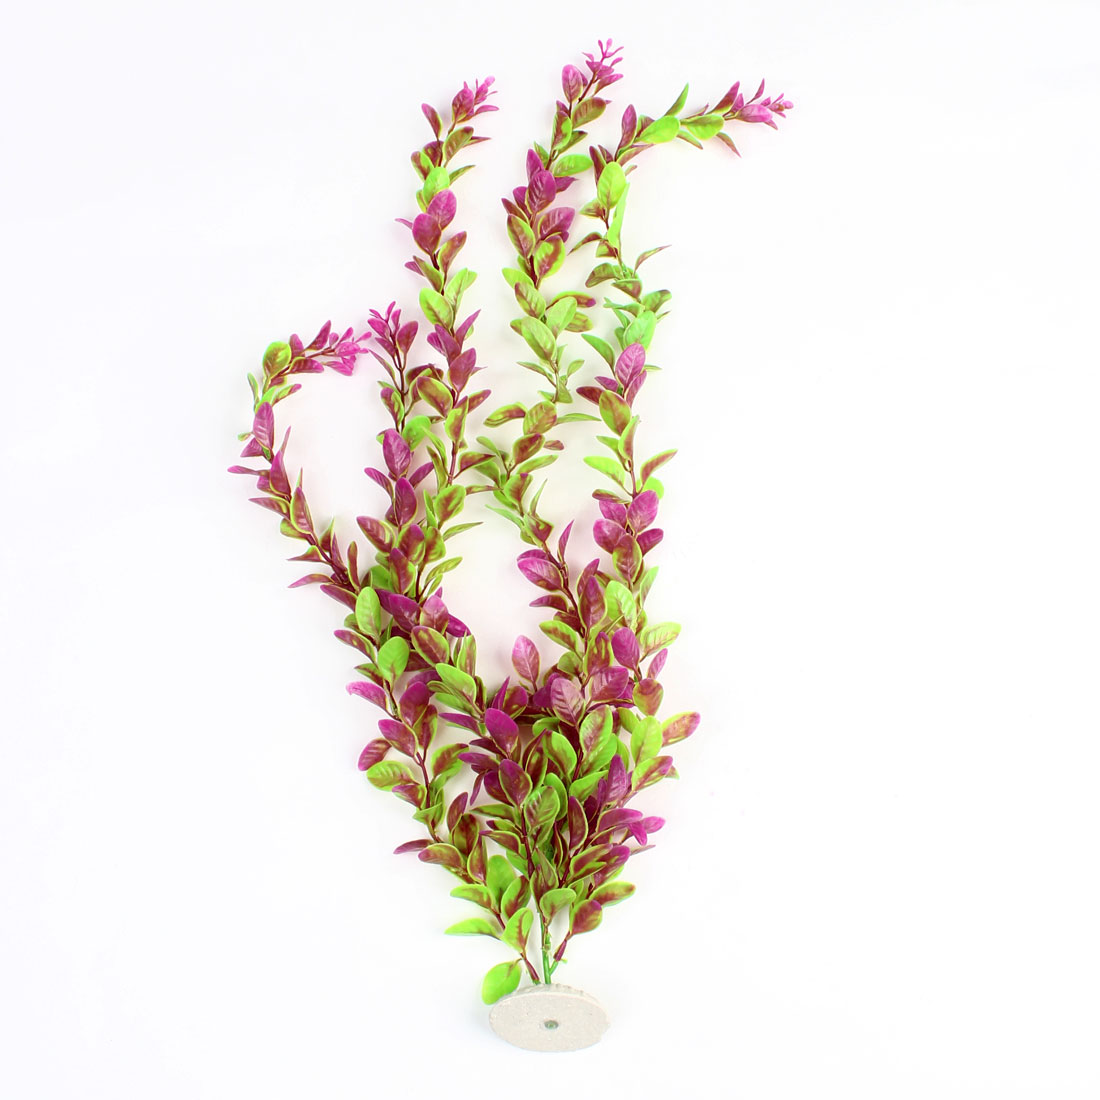 Aquarium Fishtank Decor Ceramic Base Green Fuchsia Underwater Plant 54cm High